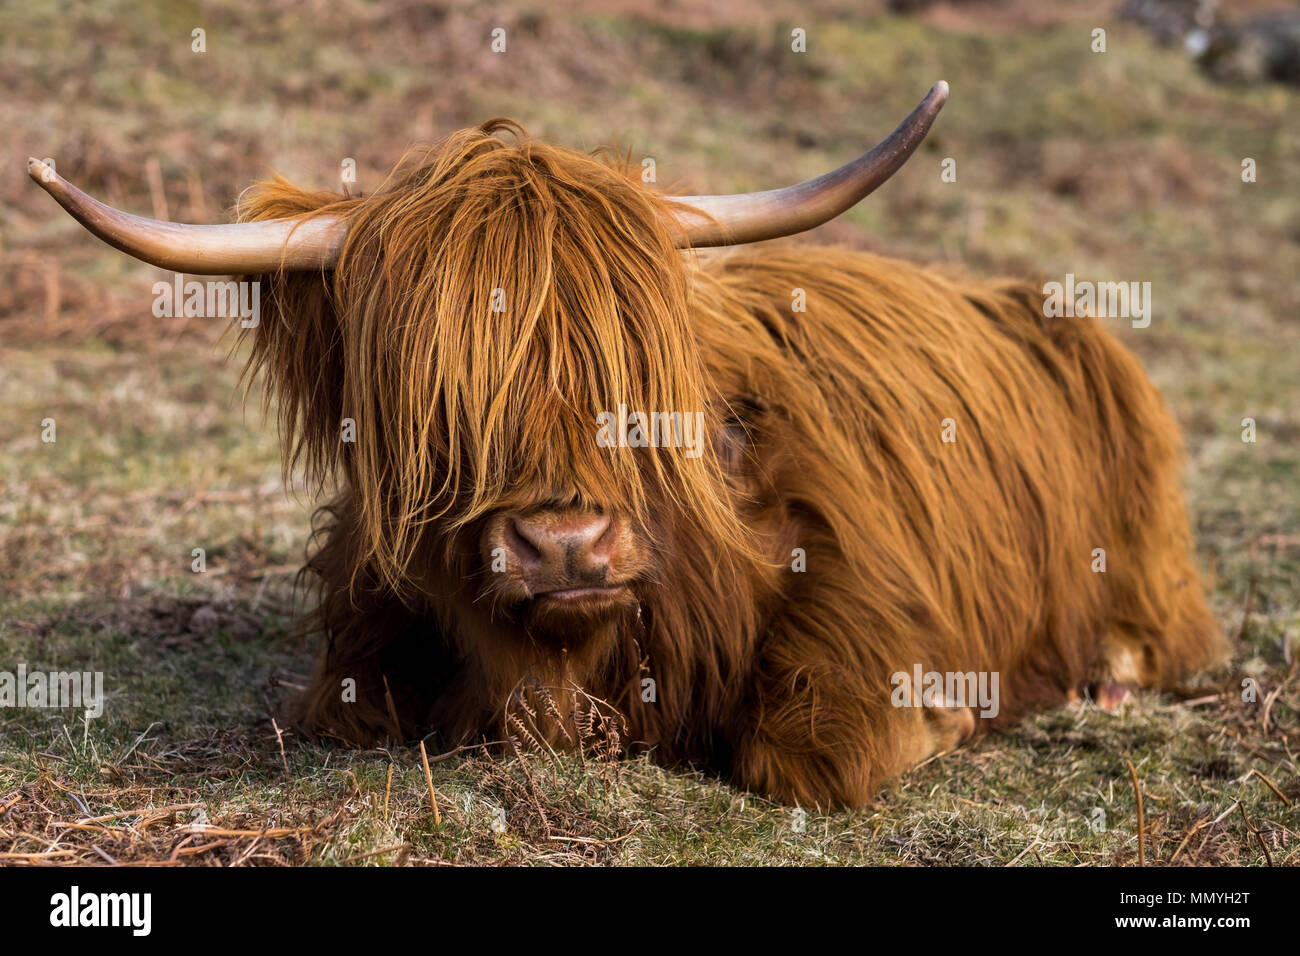 Close-up of a Scottish highland cow in a field in Glencoe, Scotland. - Stock Image